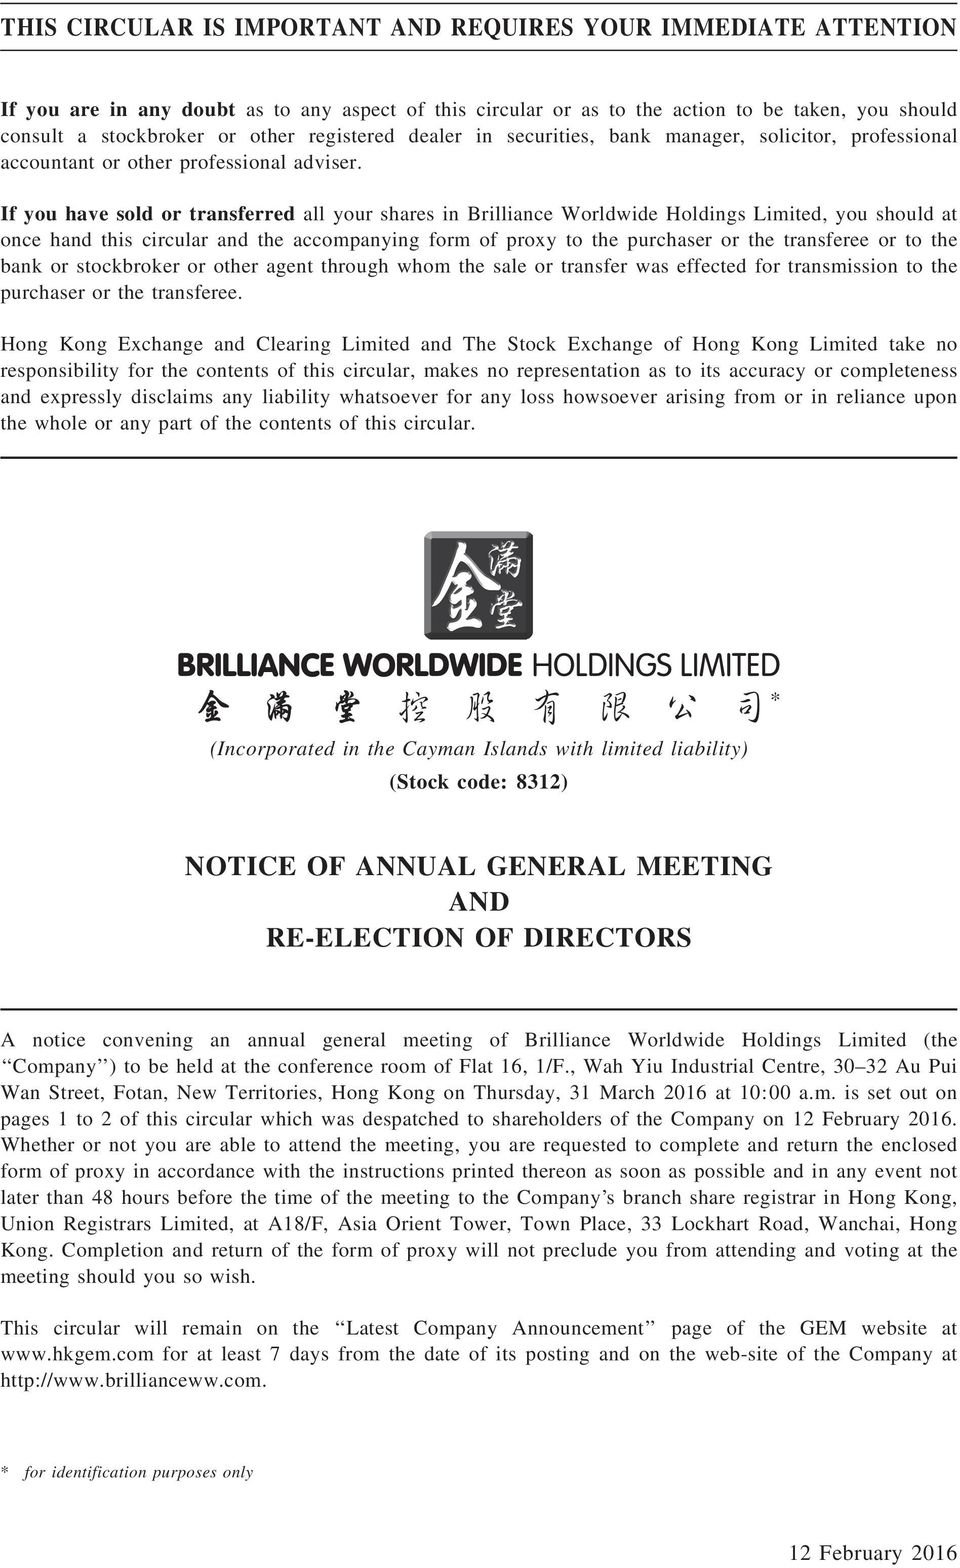 If you have sold or transferred all your shares in Brilliance Worldwide Holdings Limited, you should at once hand this circular and the accompanying form of proxy to the purchaser or the transferee